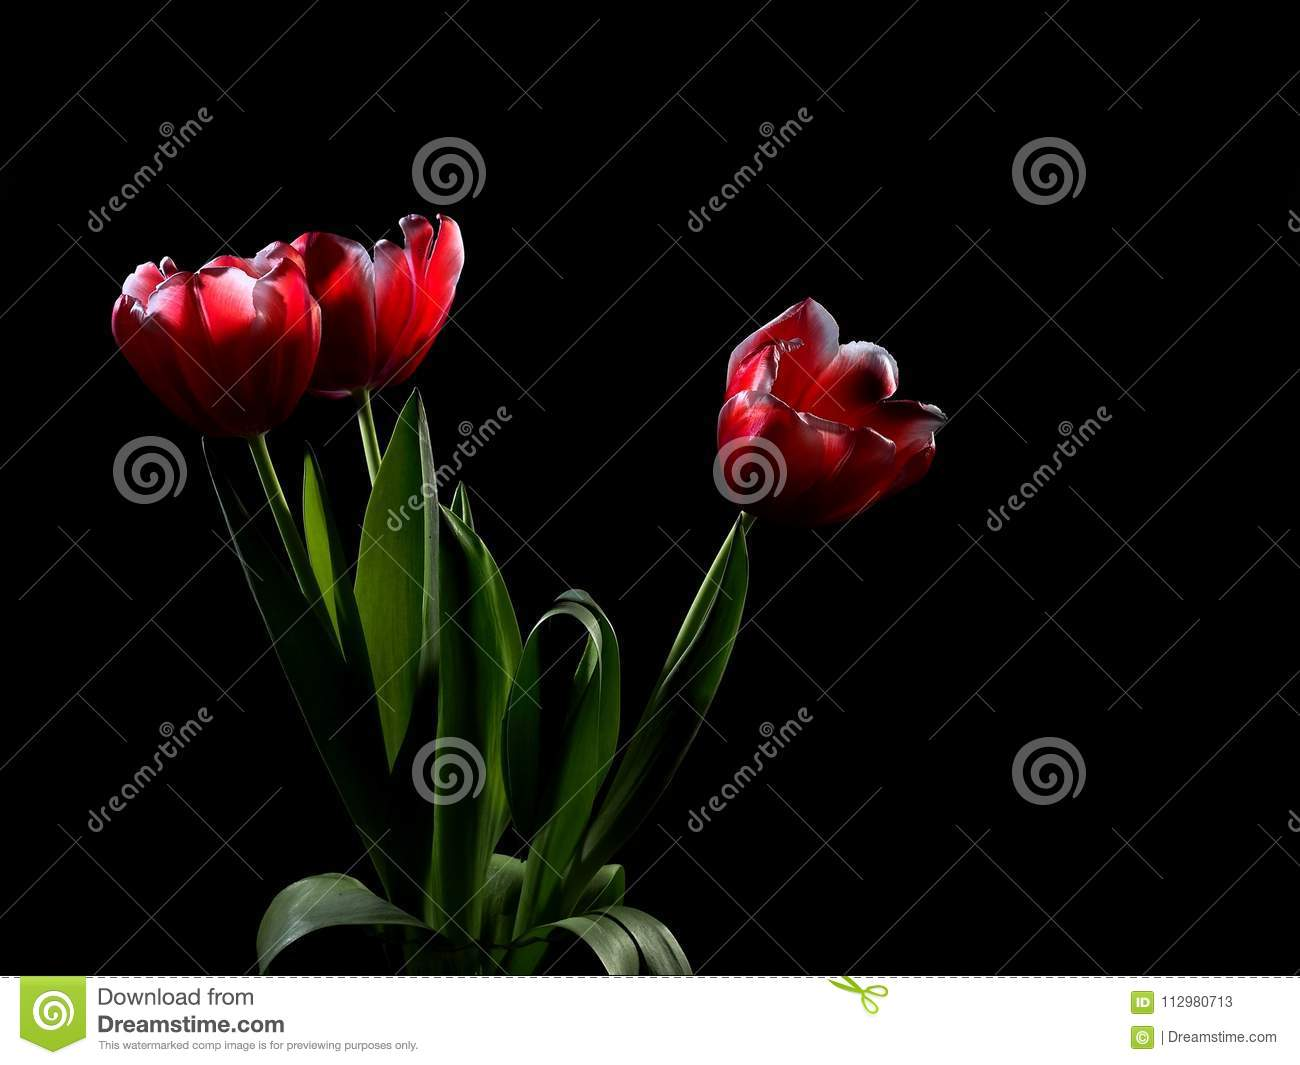 On a black background, in a glass vase for flowers is a bouquet of three tulips, presented to a beloved woman. Tulips glow, as if